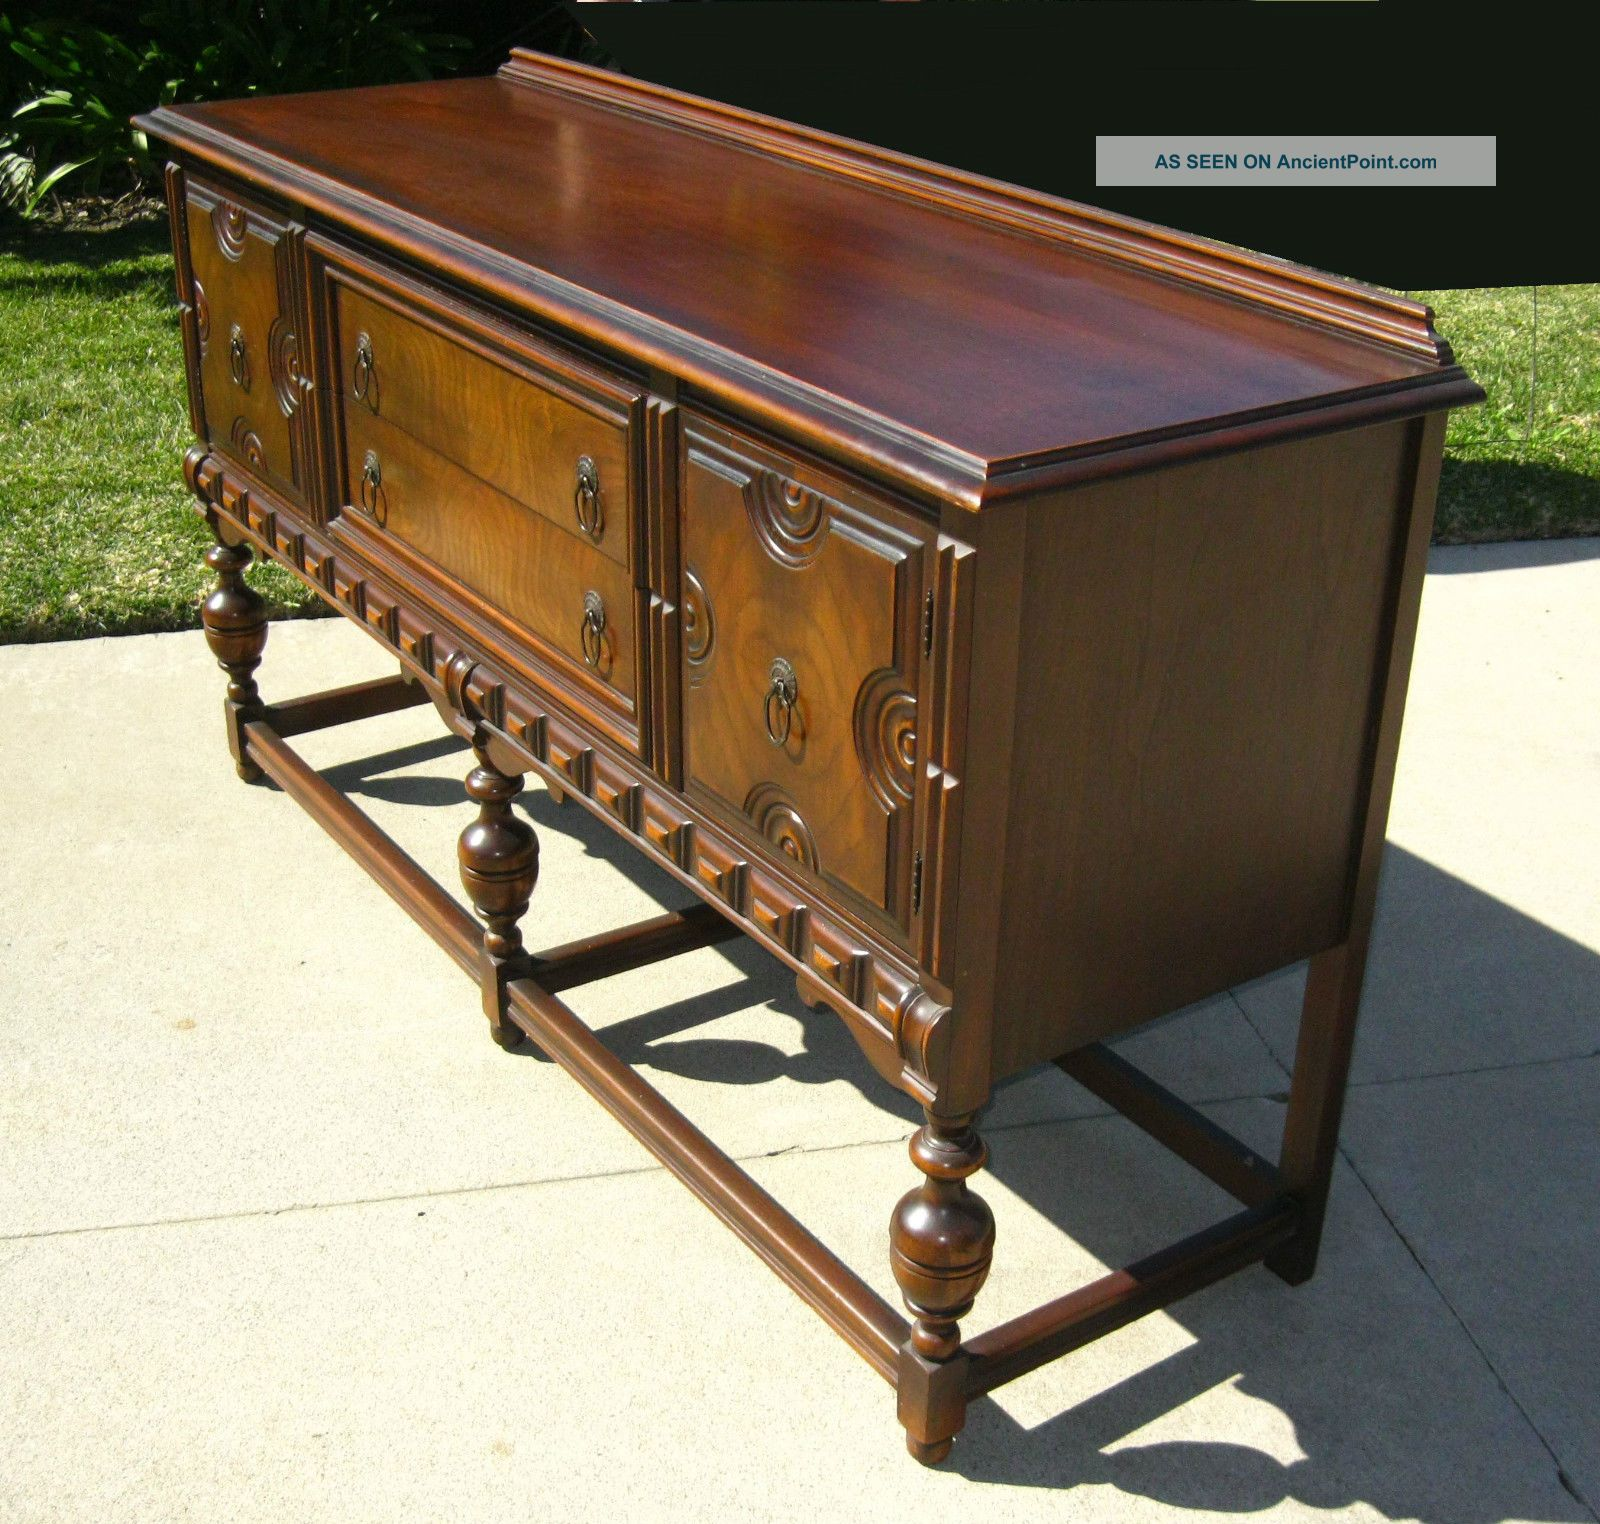 Gorgeous Vintage Spanish Revival Ornate Buffet Sideboard Credenza Post-1950 photo